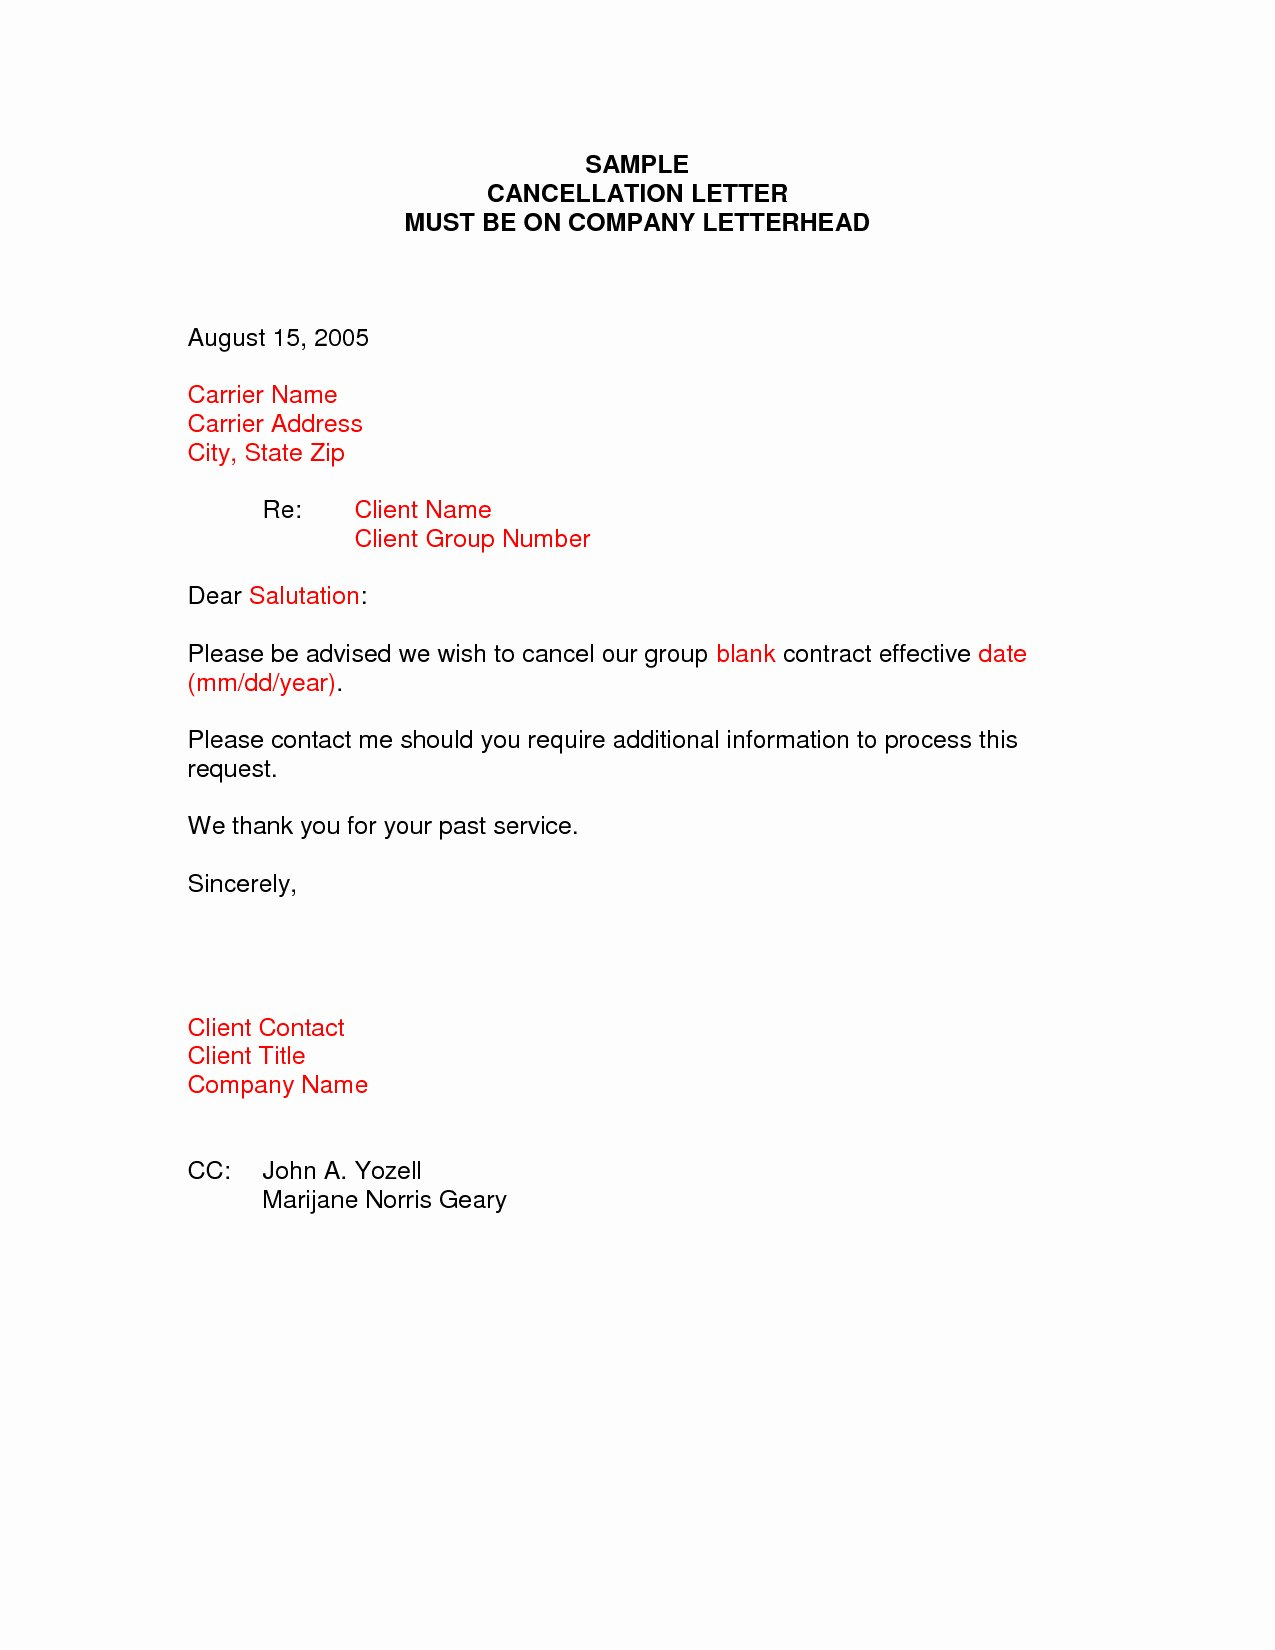 Timeshare Cancellation Letter Template New Timeshare Cancellation Letter Template Samples